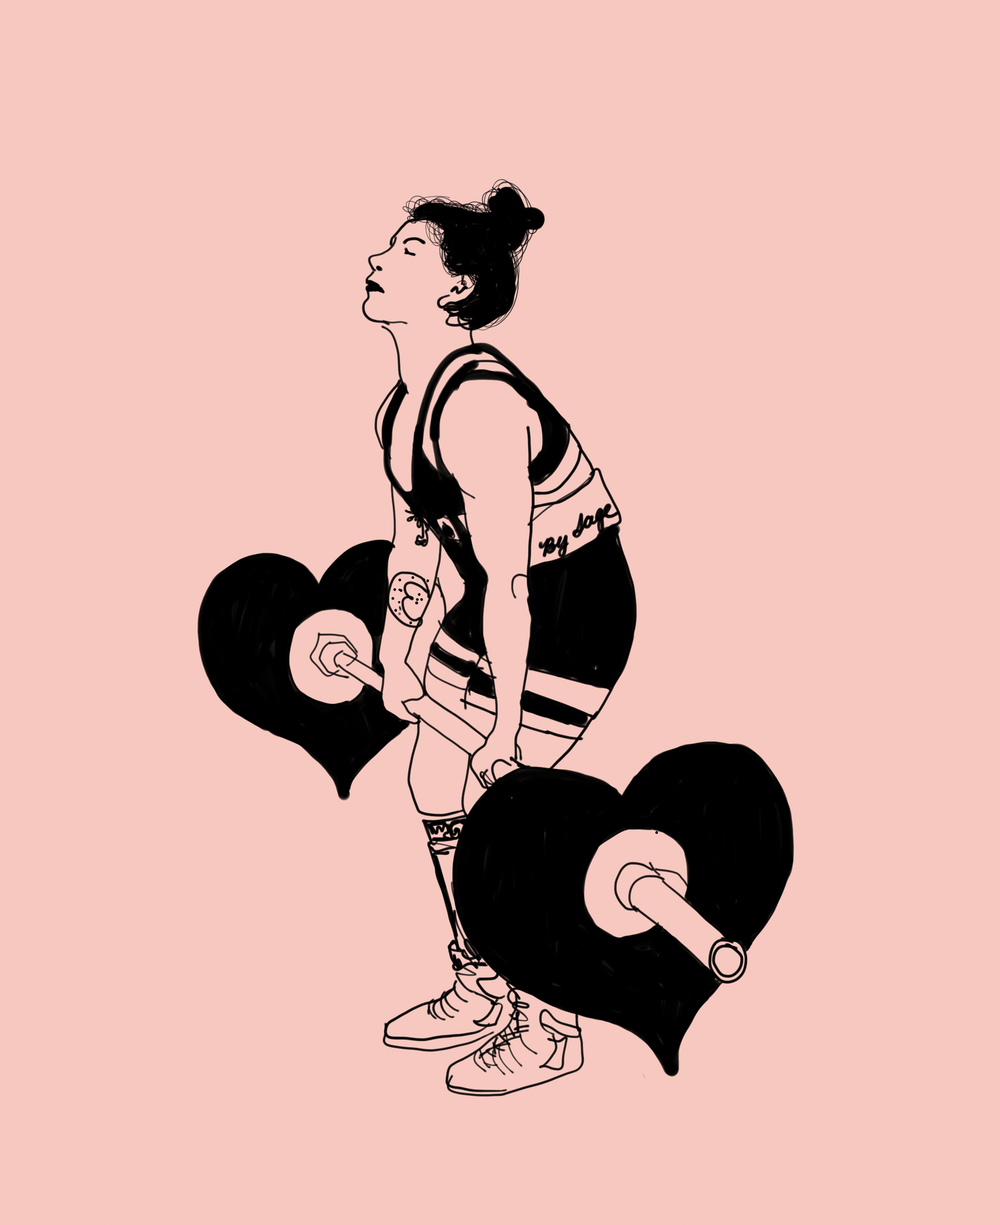 weightlift.png